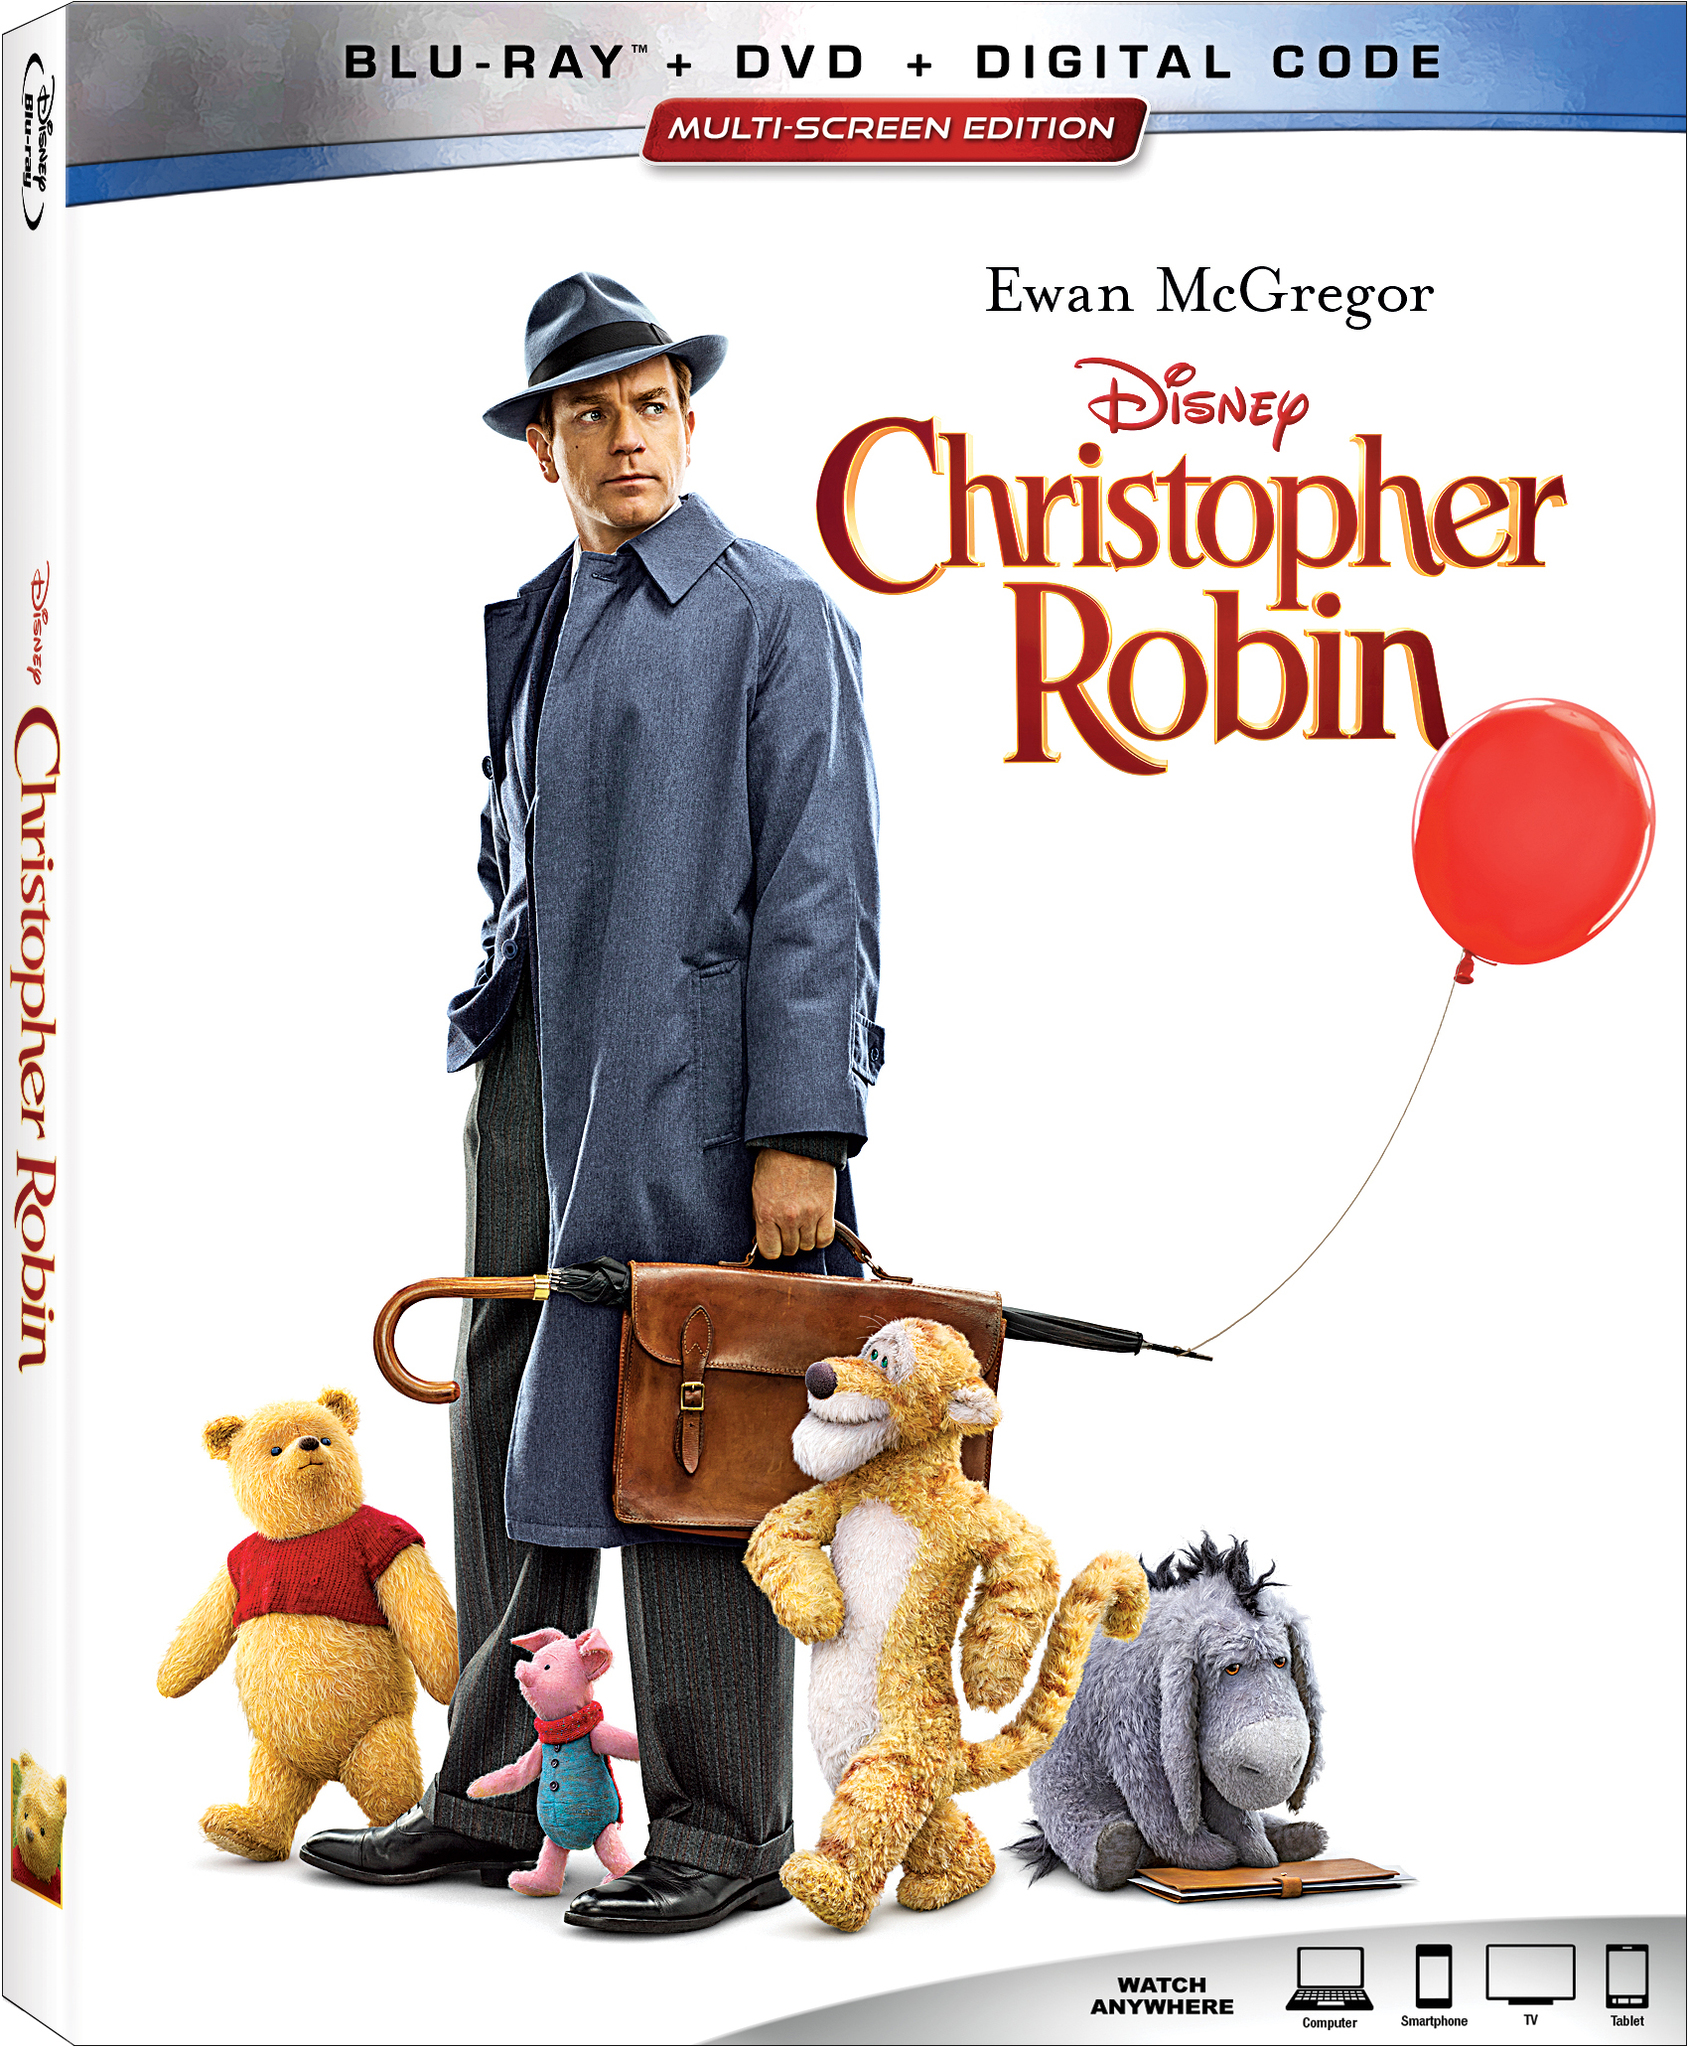 Watch the Christopher Robin DVD during a Winnie the Pooh party